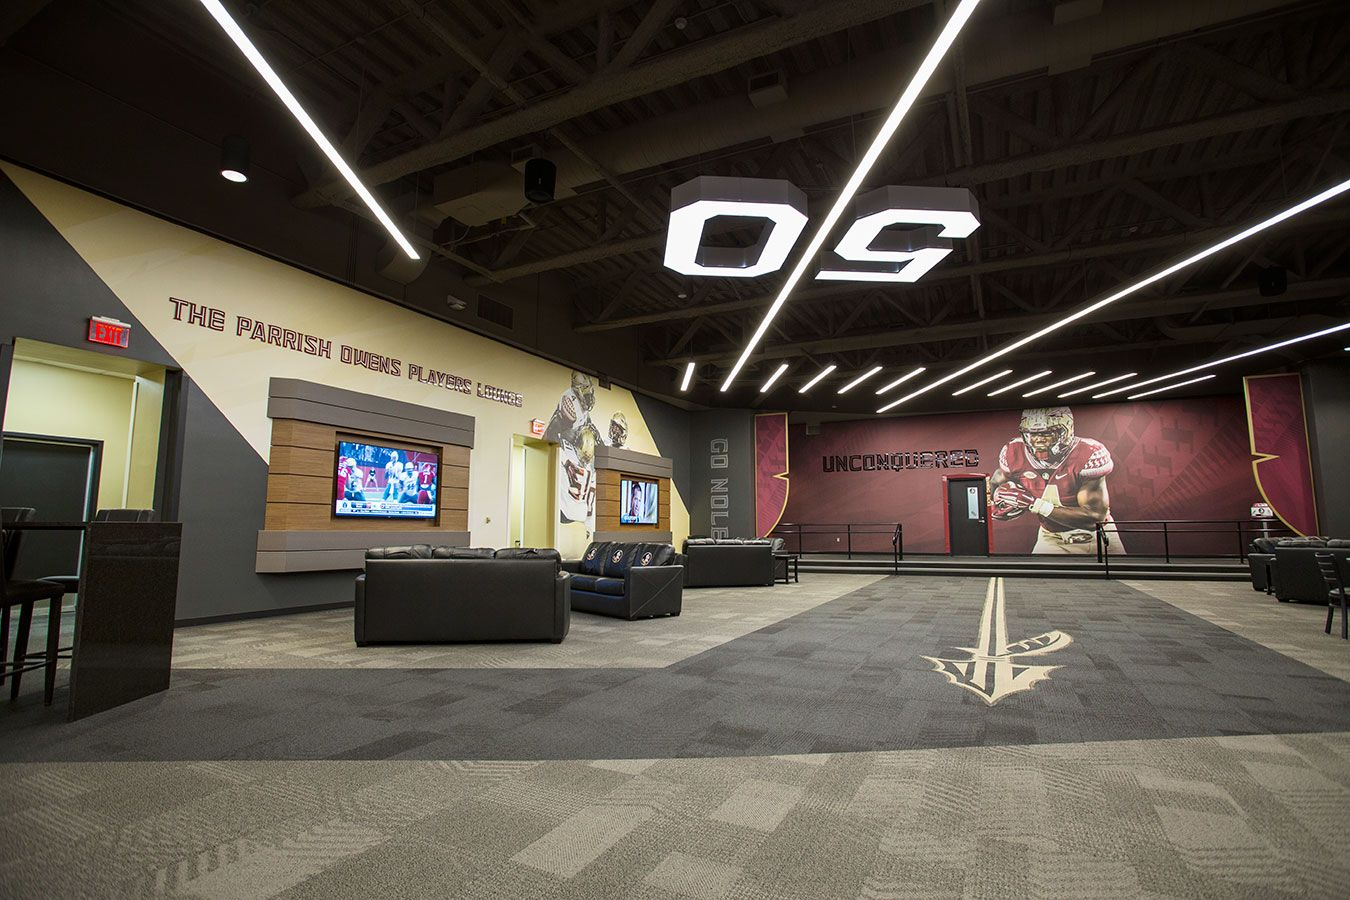 Florida State Football Players Lounge Florida State Football